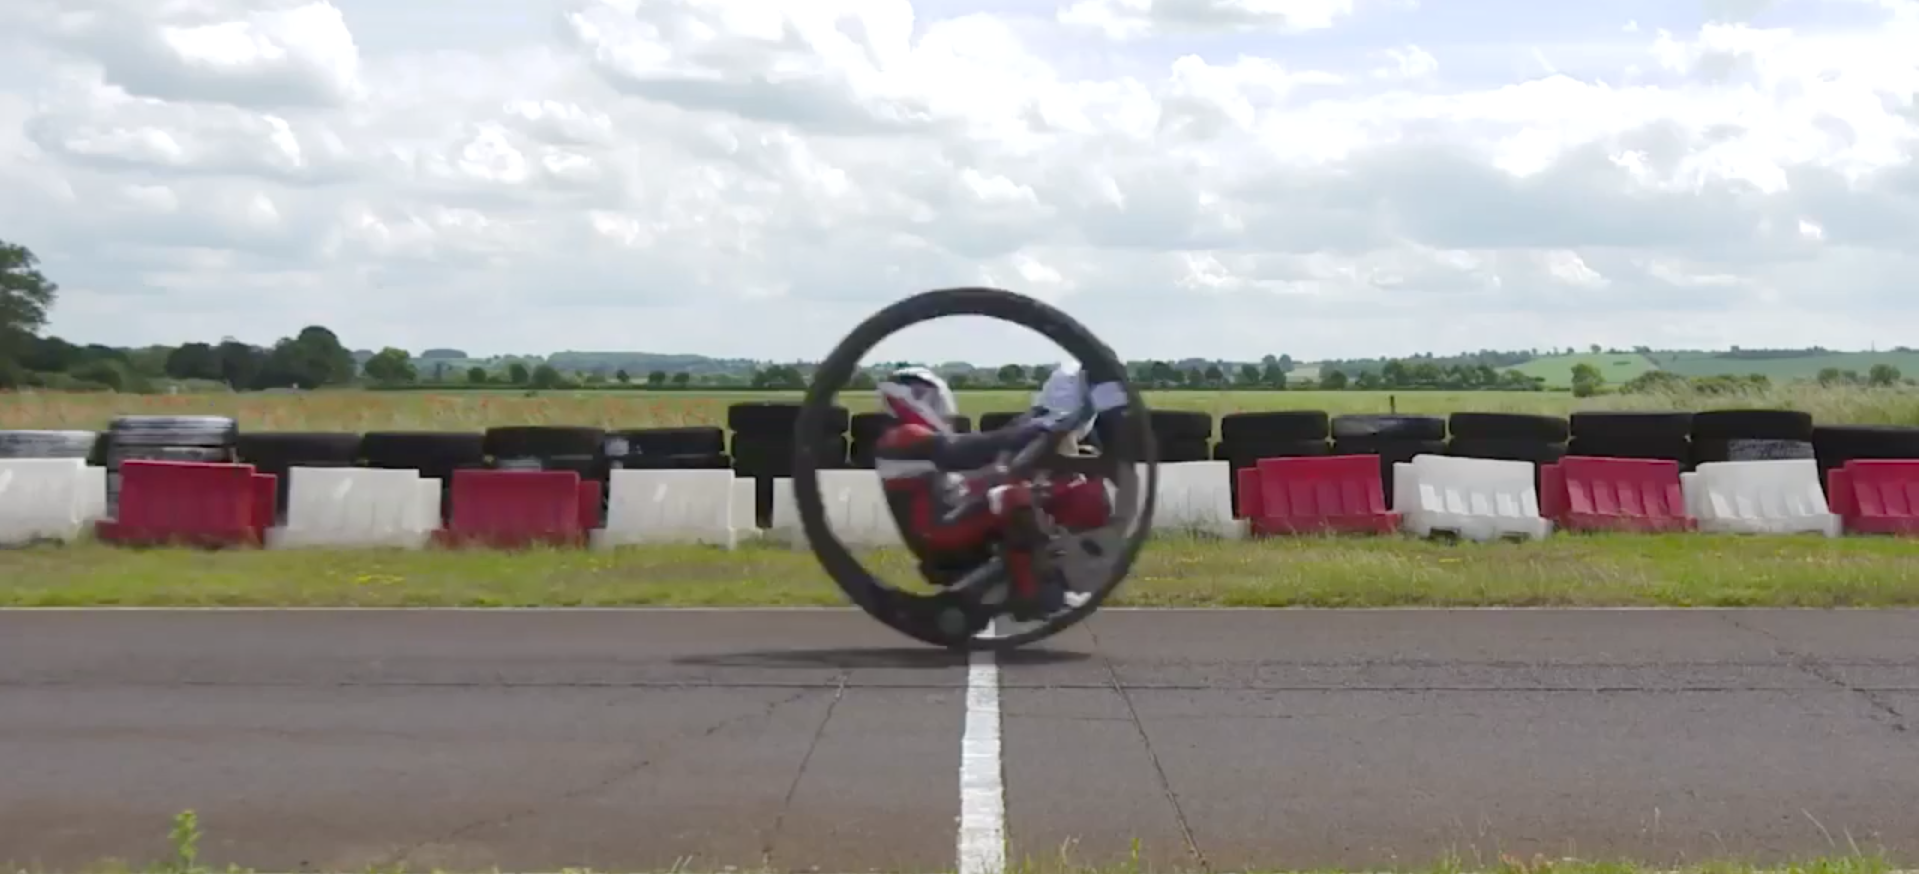 Monowheel Rider Sets New Guinness World Record With 61mph Run